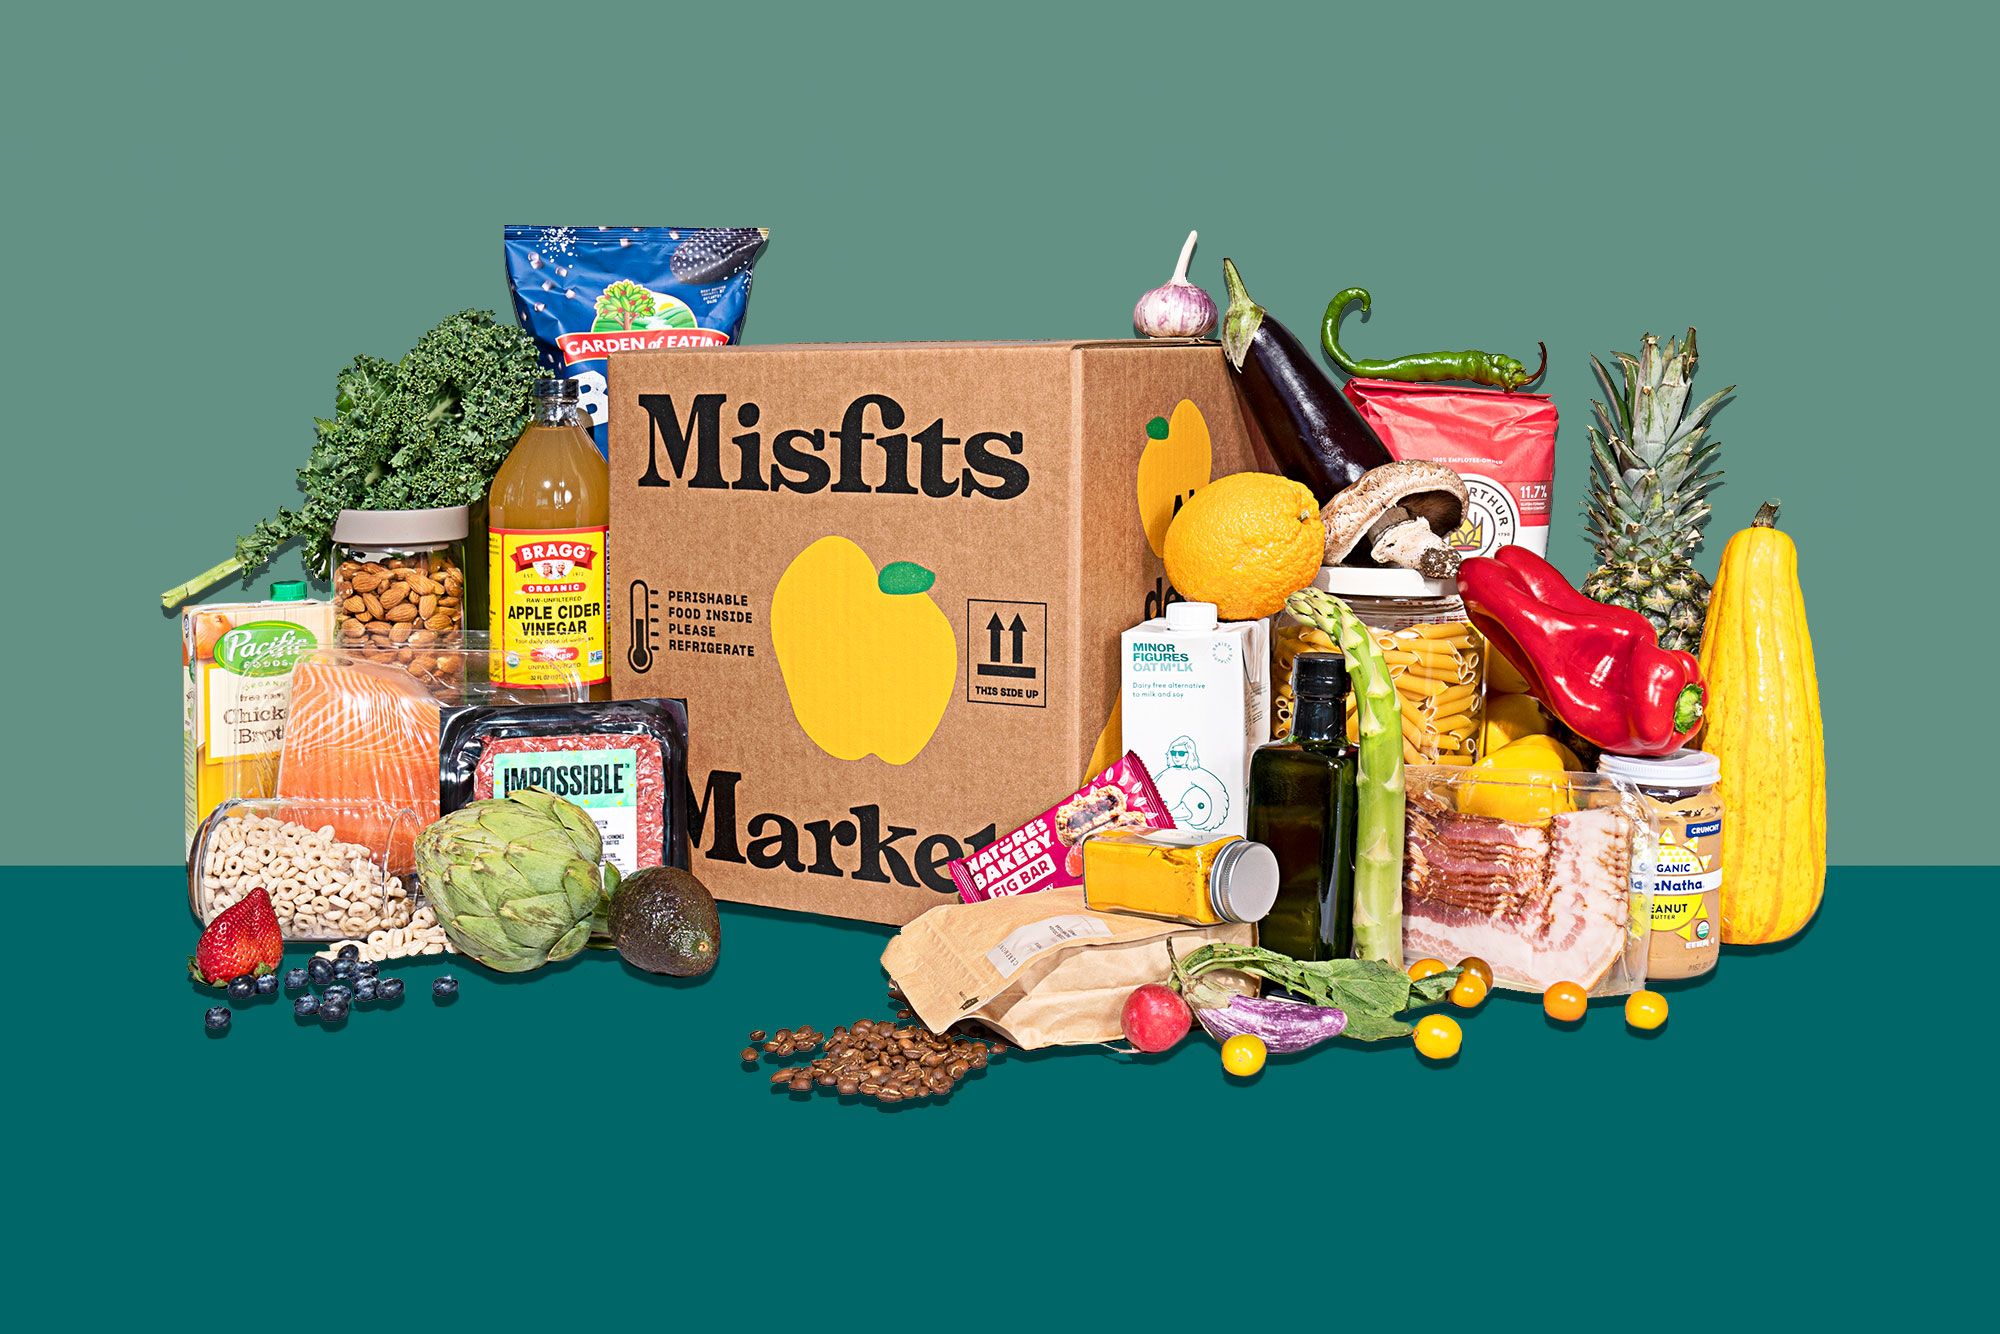 Misfits Market box with produce and other products alongside